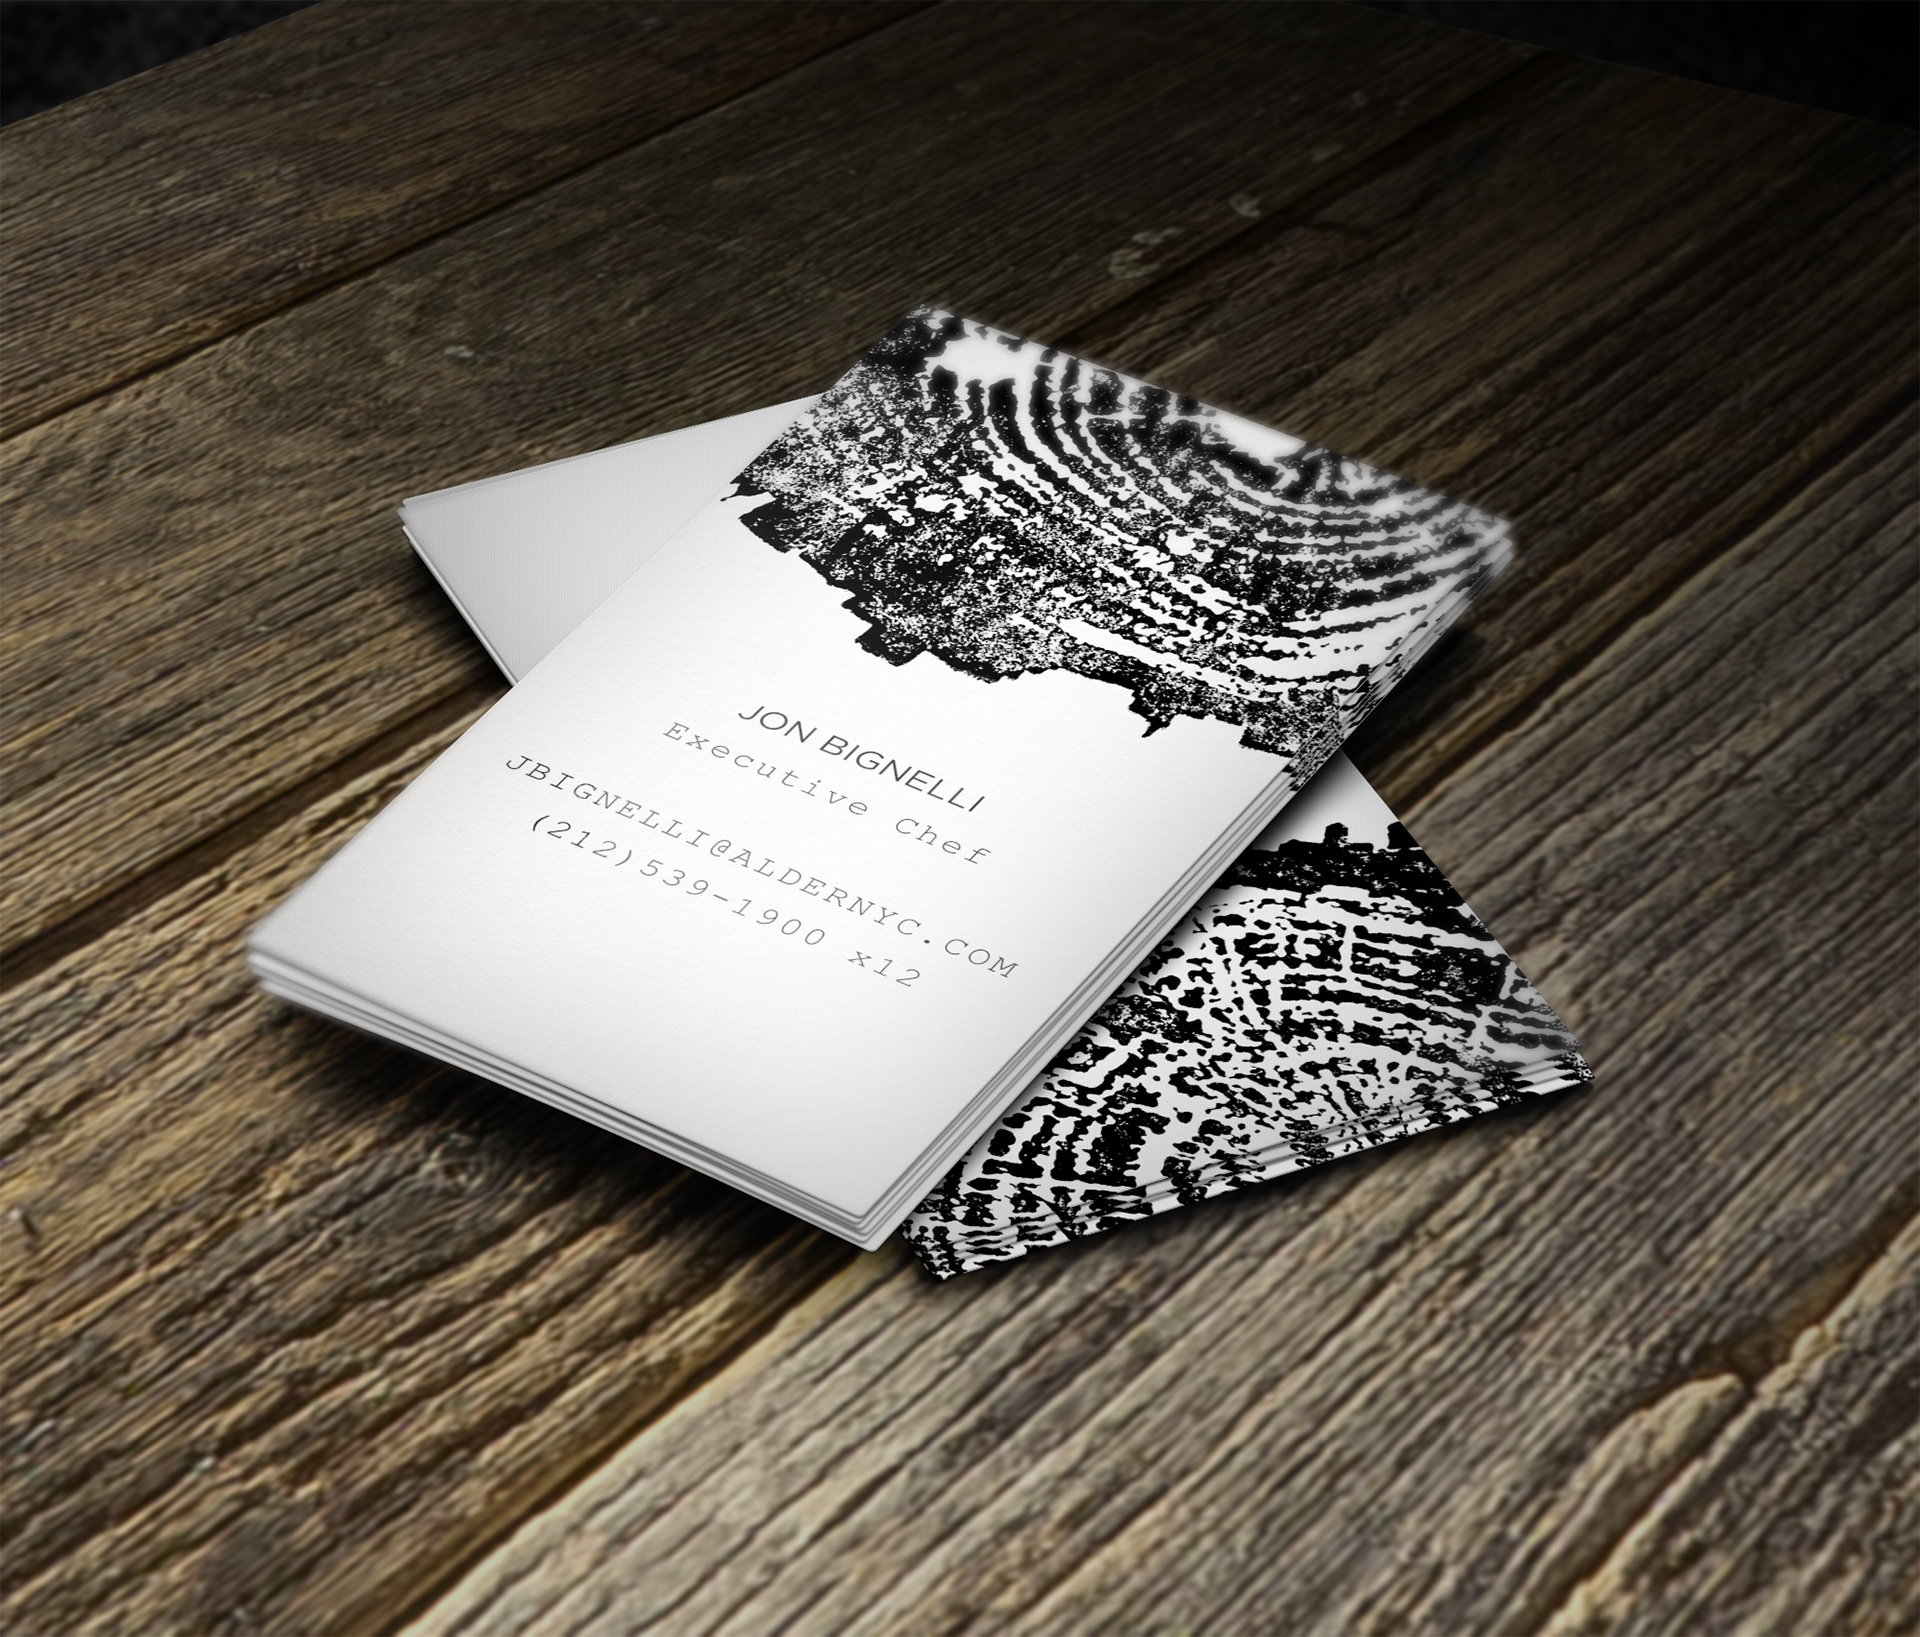 Business cards - The business cards are elegant black and white with sparse typography.